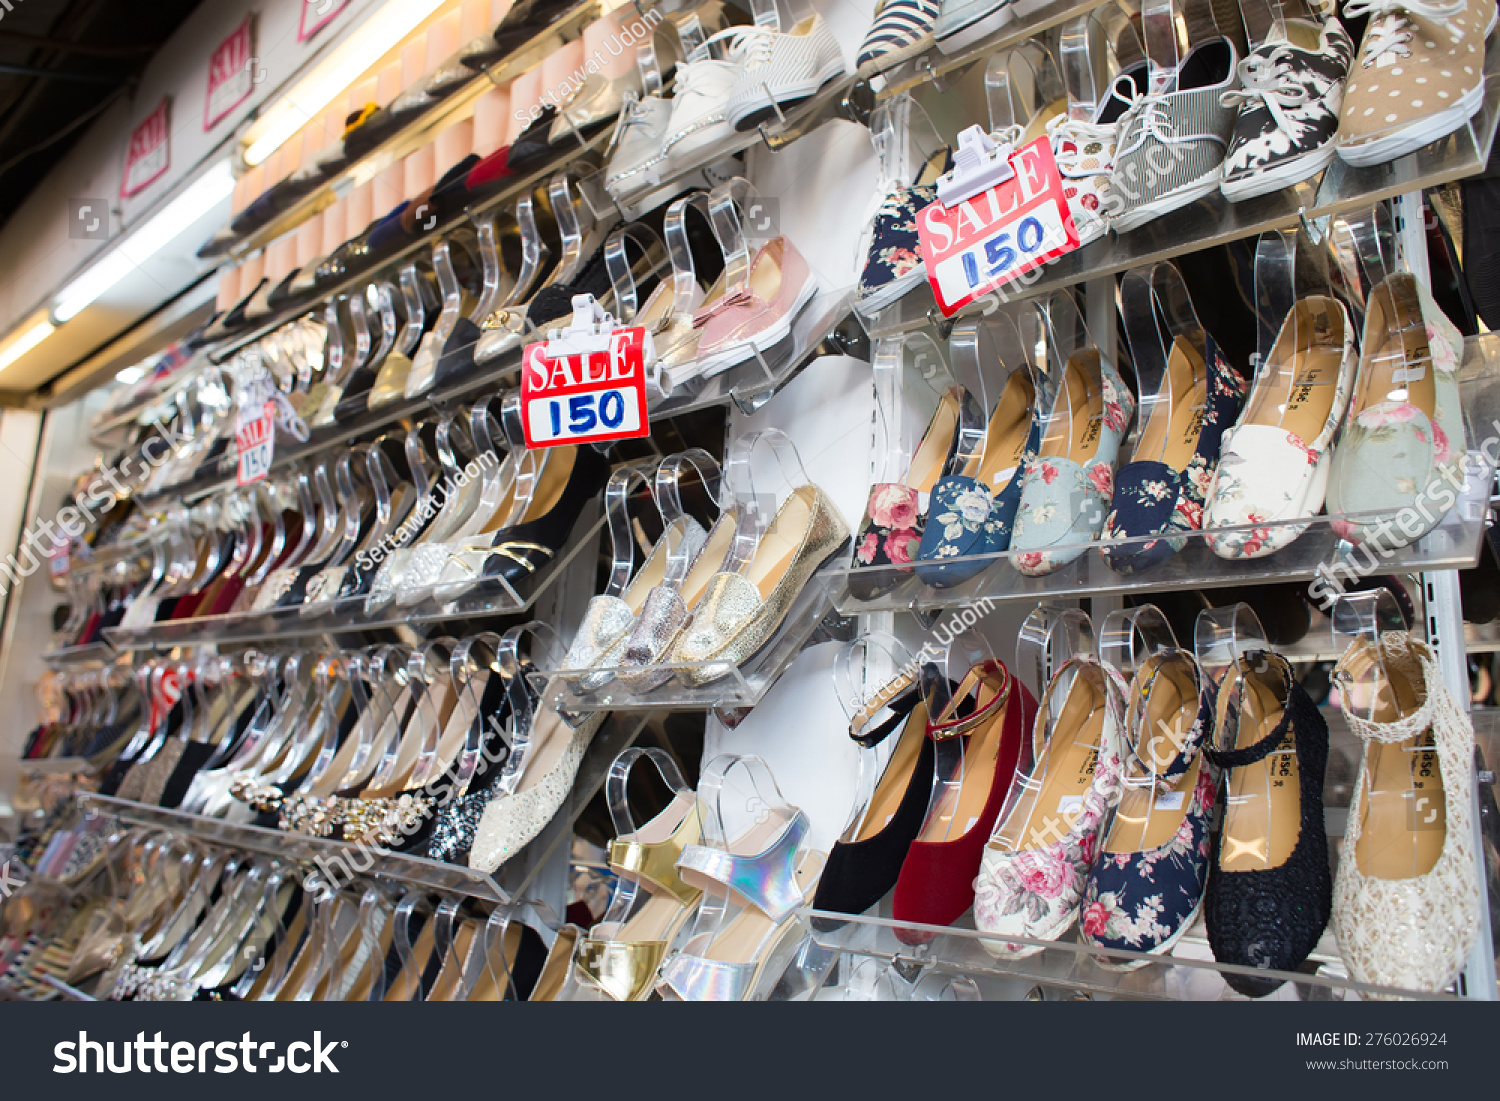 Chatuchak Market Home Decor Bangkok Thailand March 15 View Shoes Stock Photo 276026924